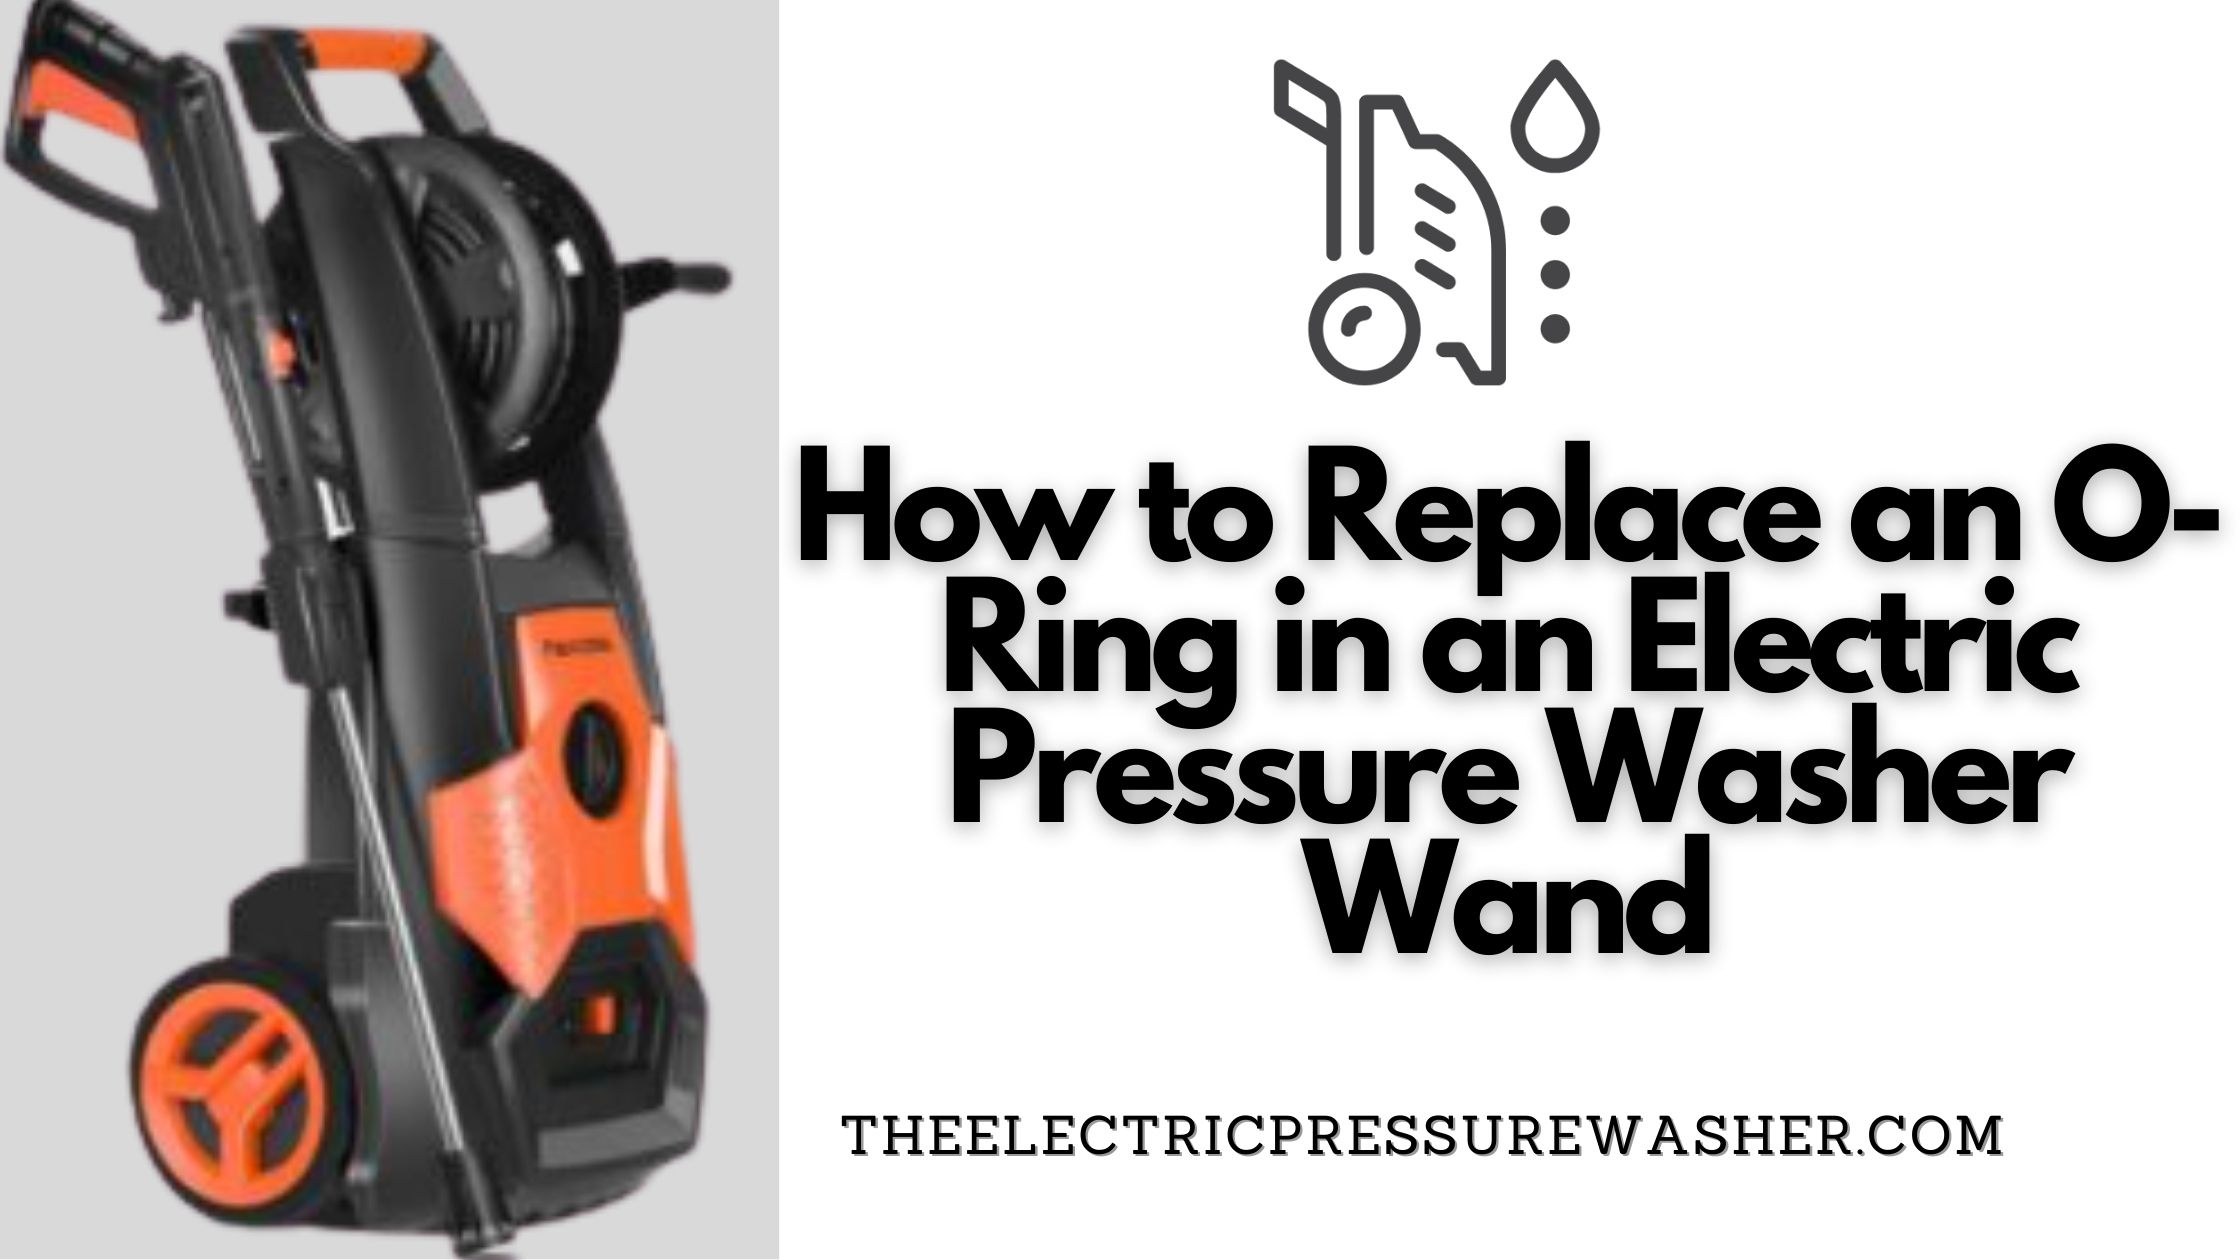 How to Replace an O-Ring in an Electric Pressure Washer Wand